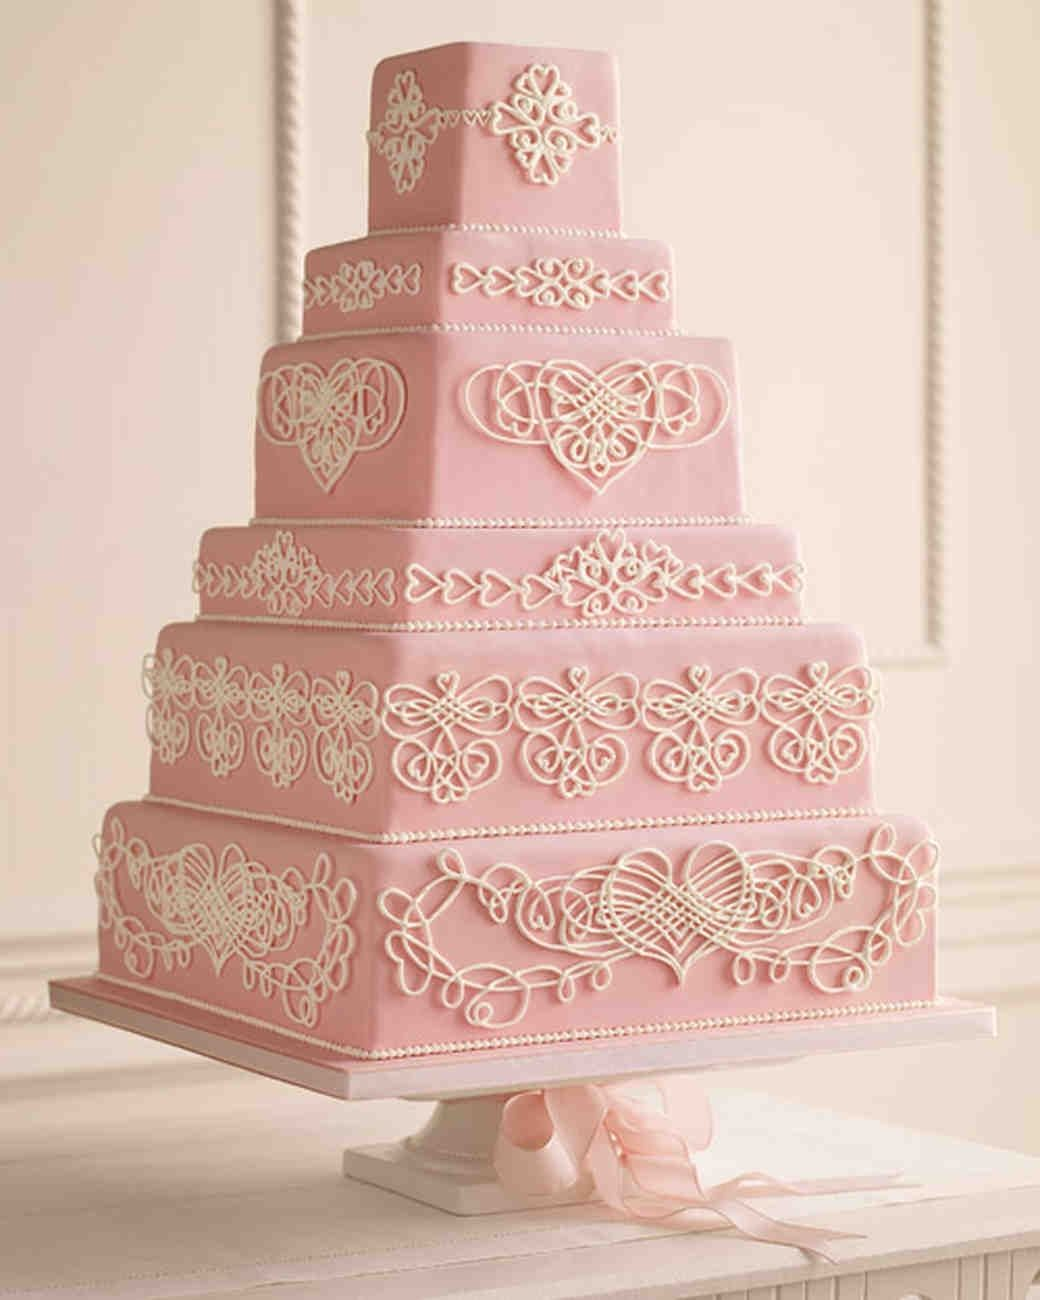 Maples Wedding Cakes Nashville Tn